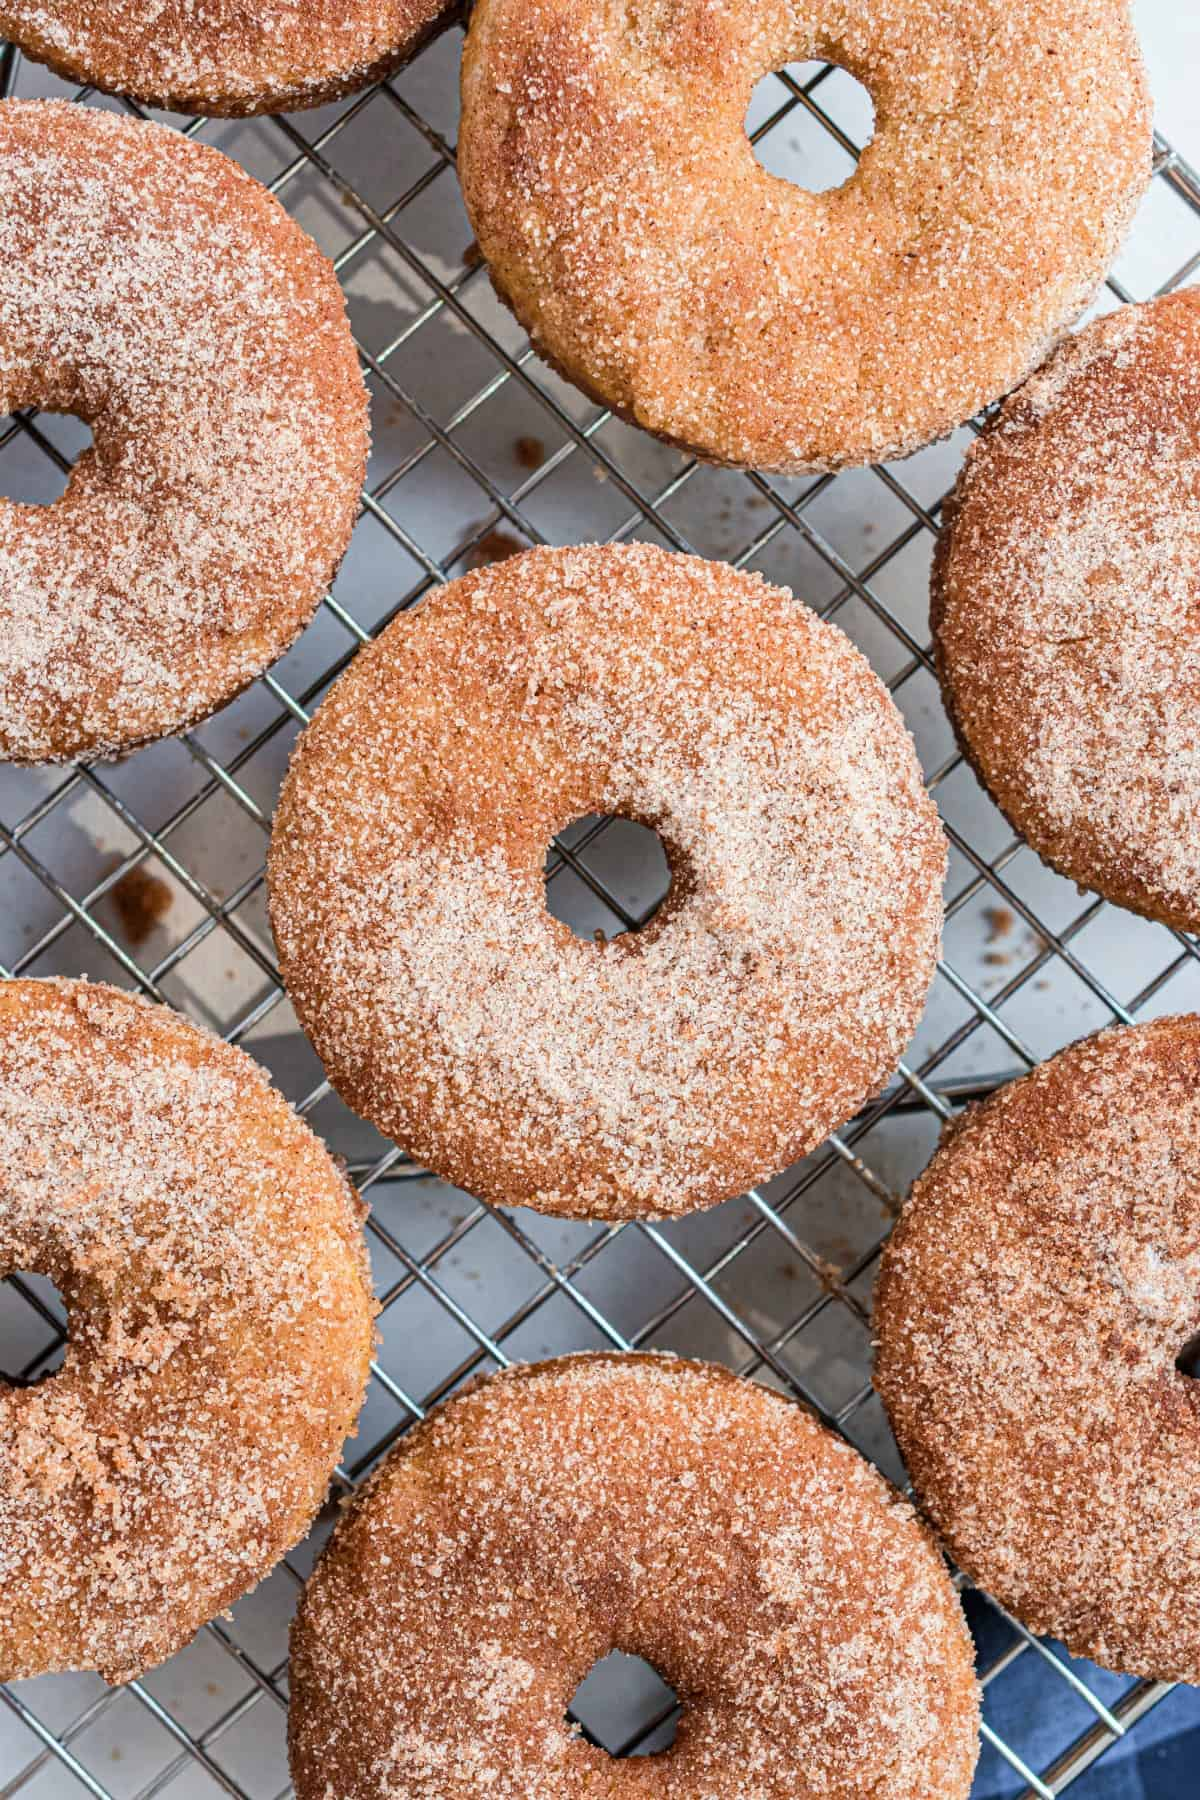 Apple cider donuts with cinnamon sugar coating on wire rack.